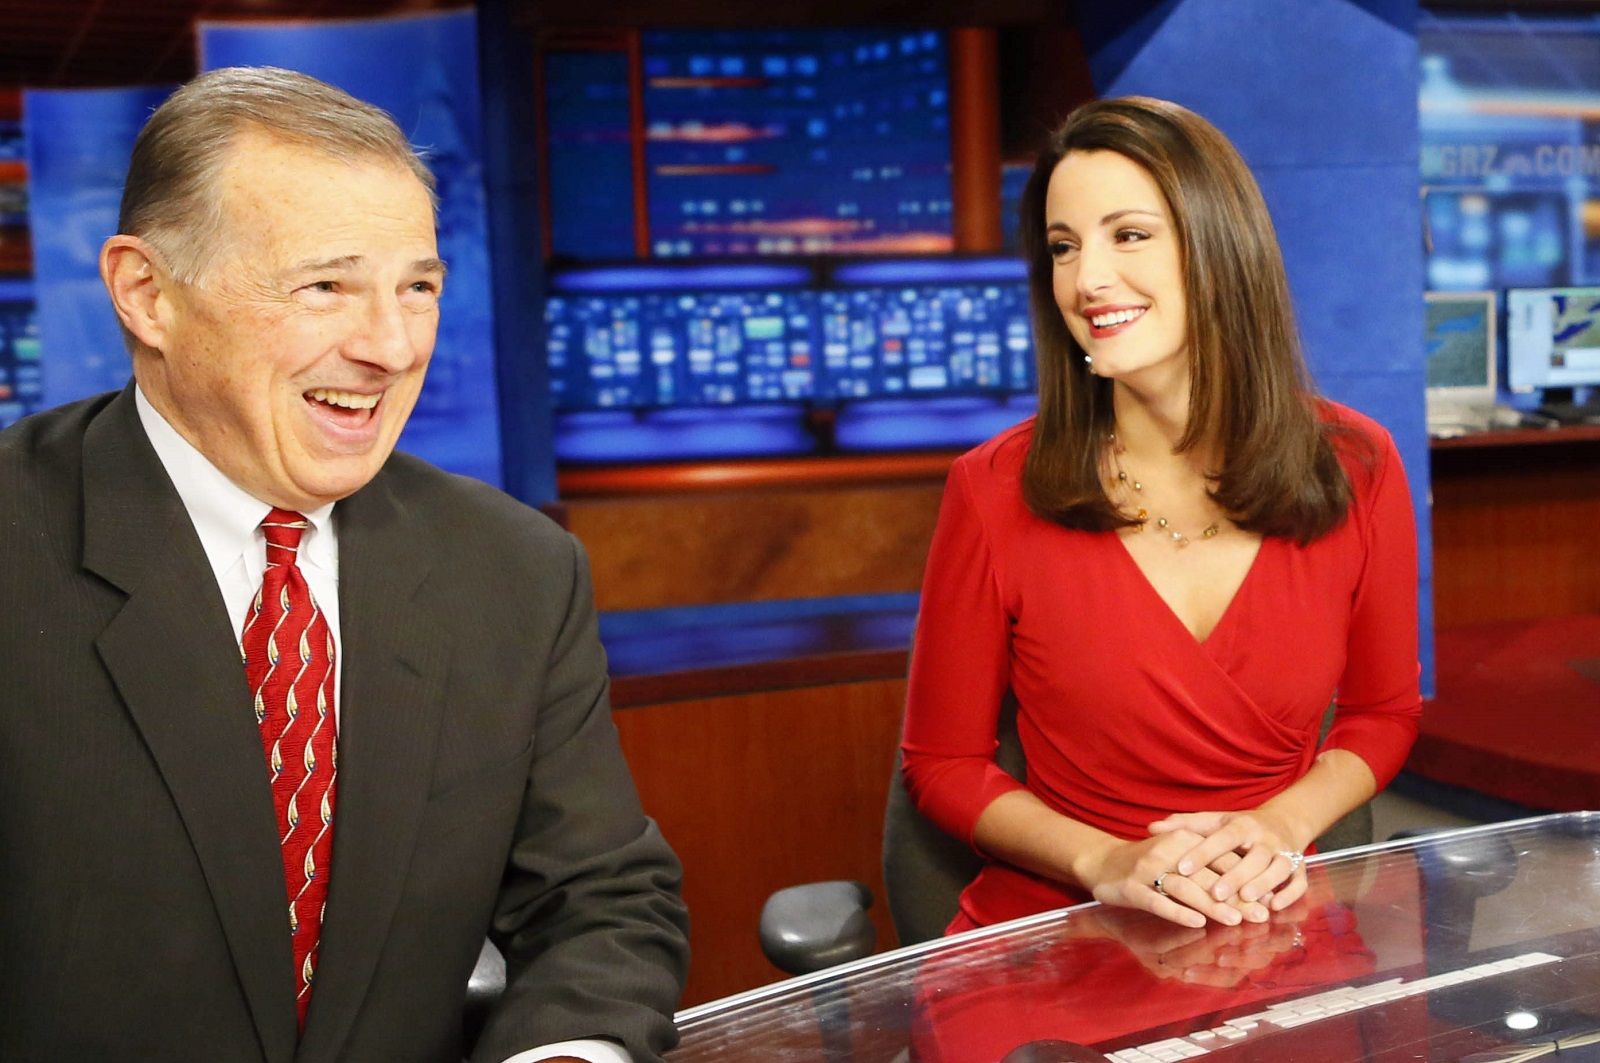 Anchors John Beard and Melissa Holmes of WGRZ have new reasons to smile thanks to February sweeps numbers. (Derek Gee/Buffalo News)